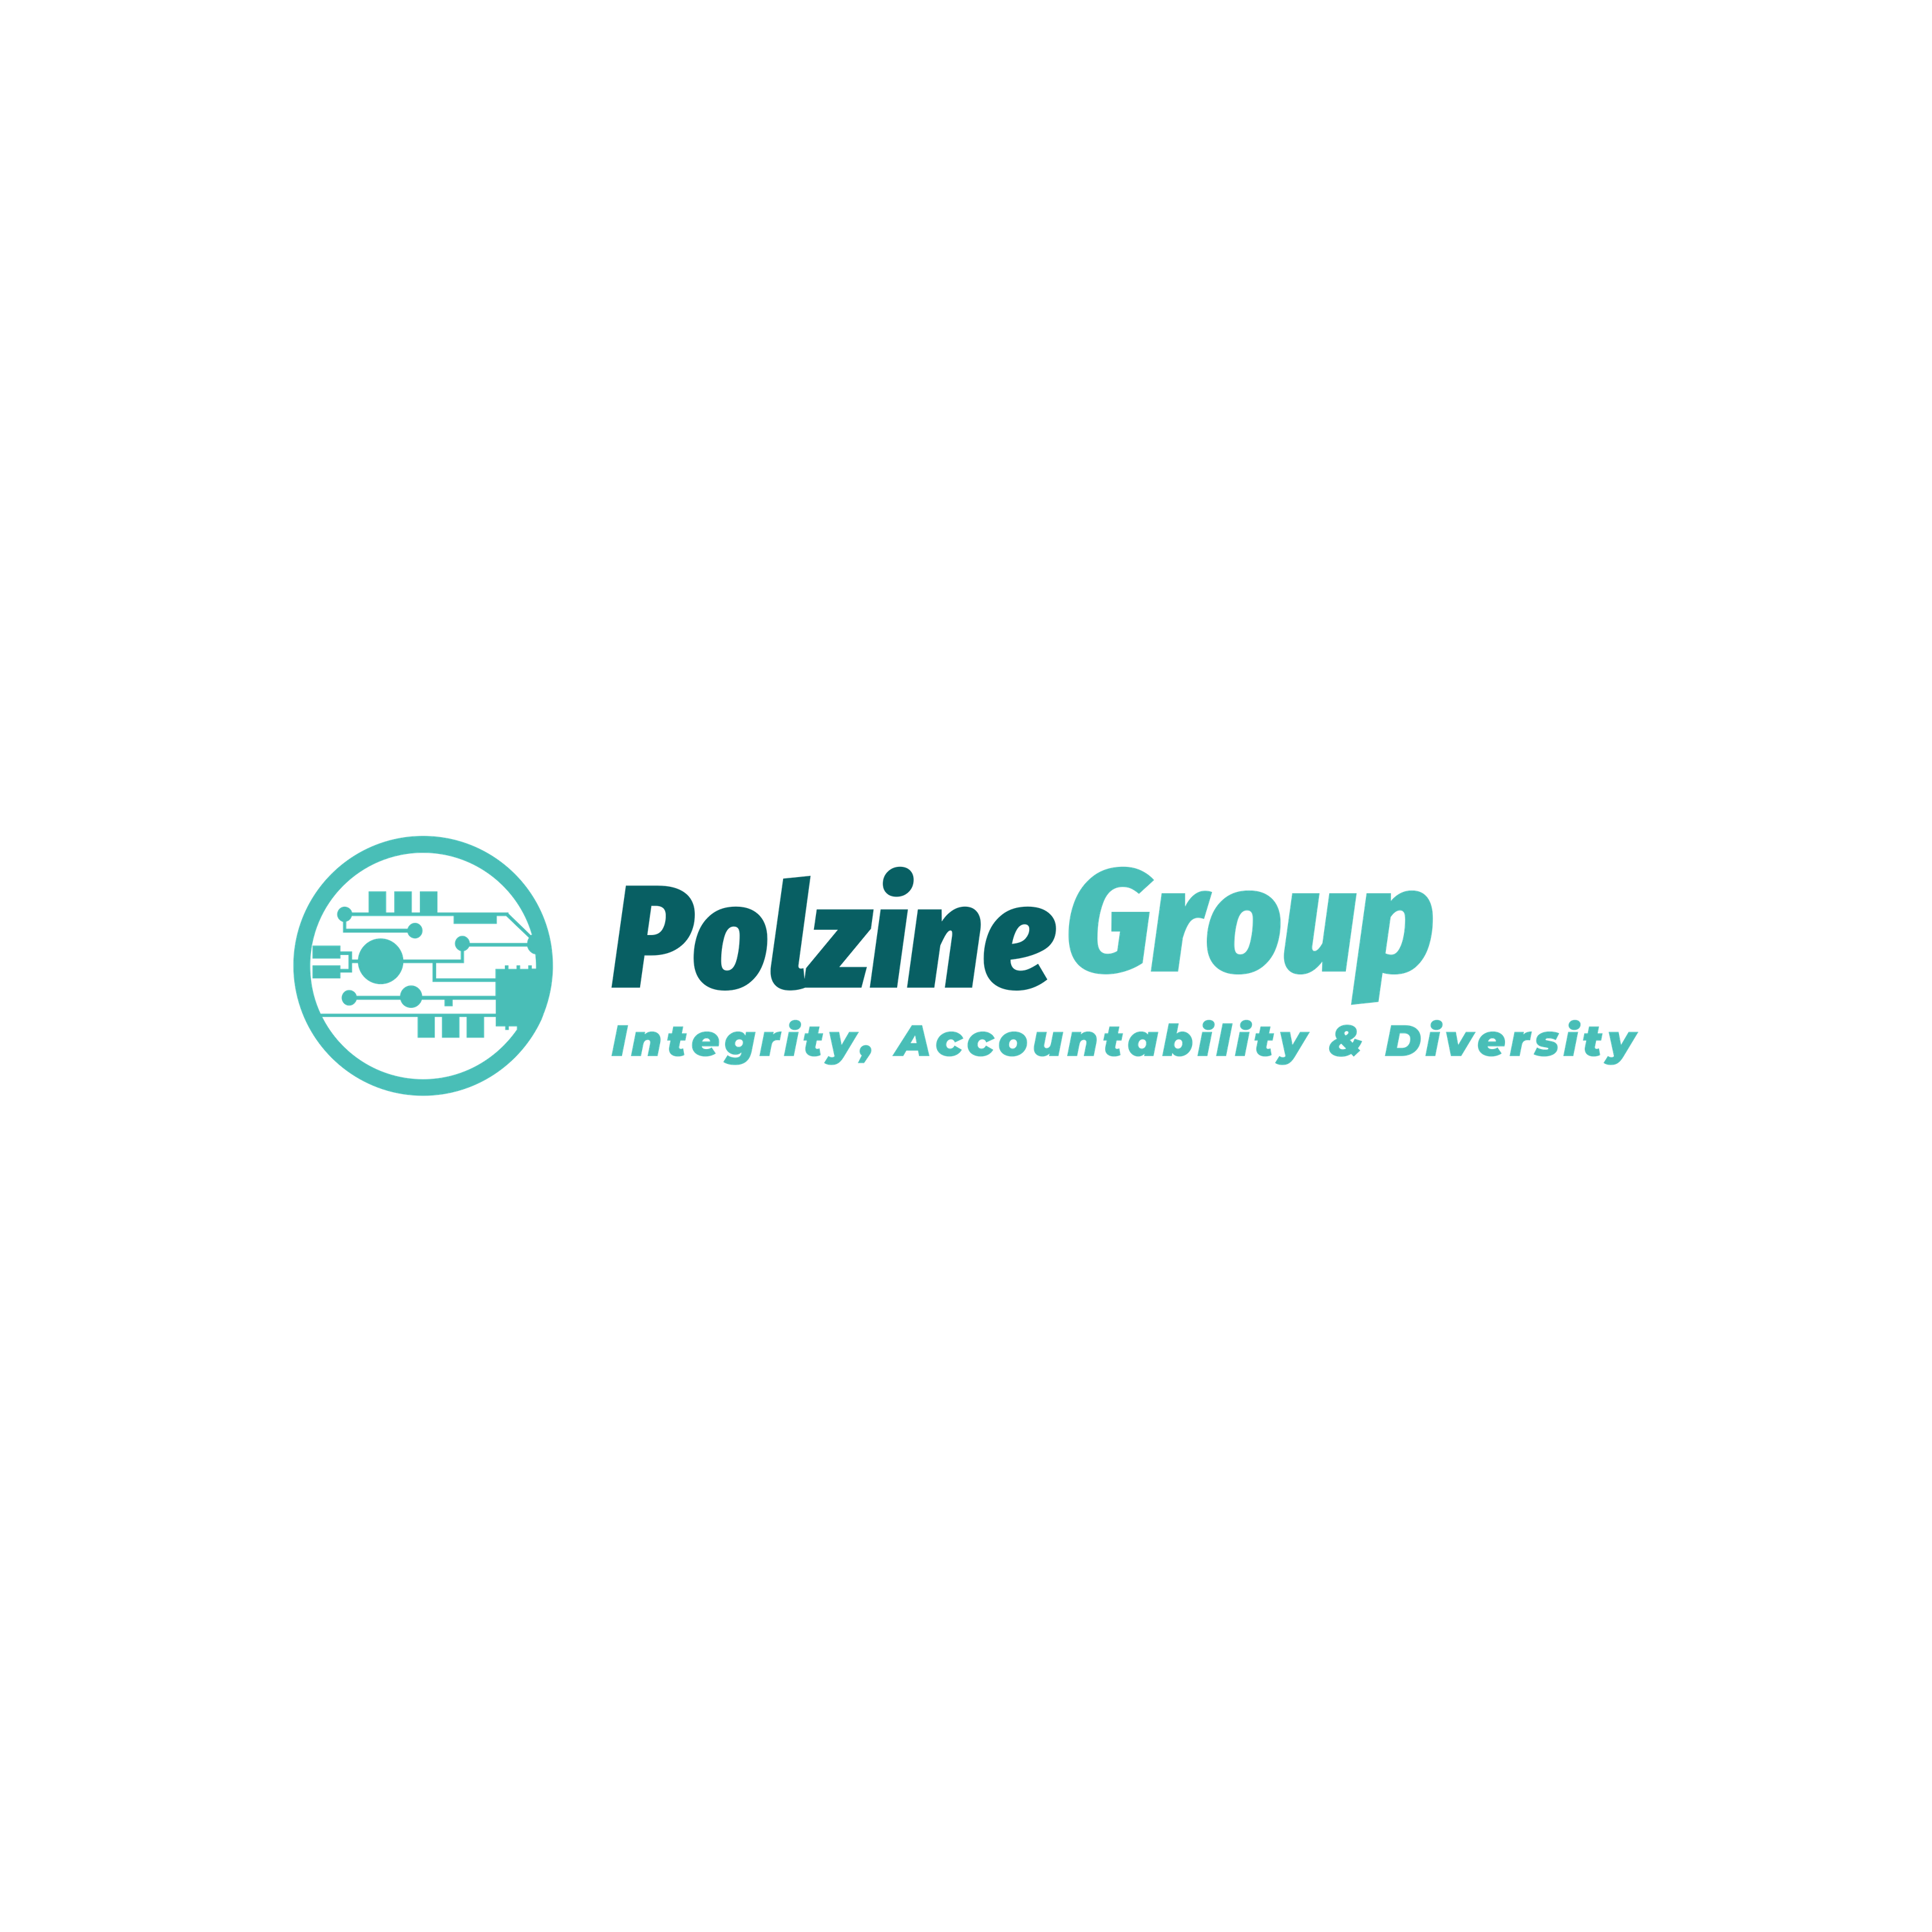 Polzine Group